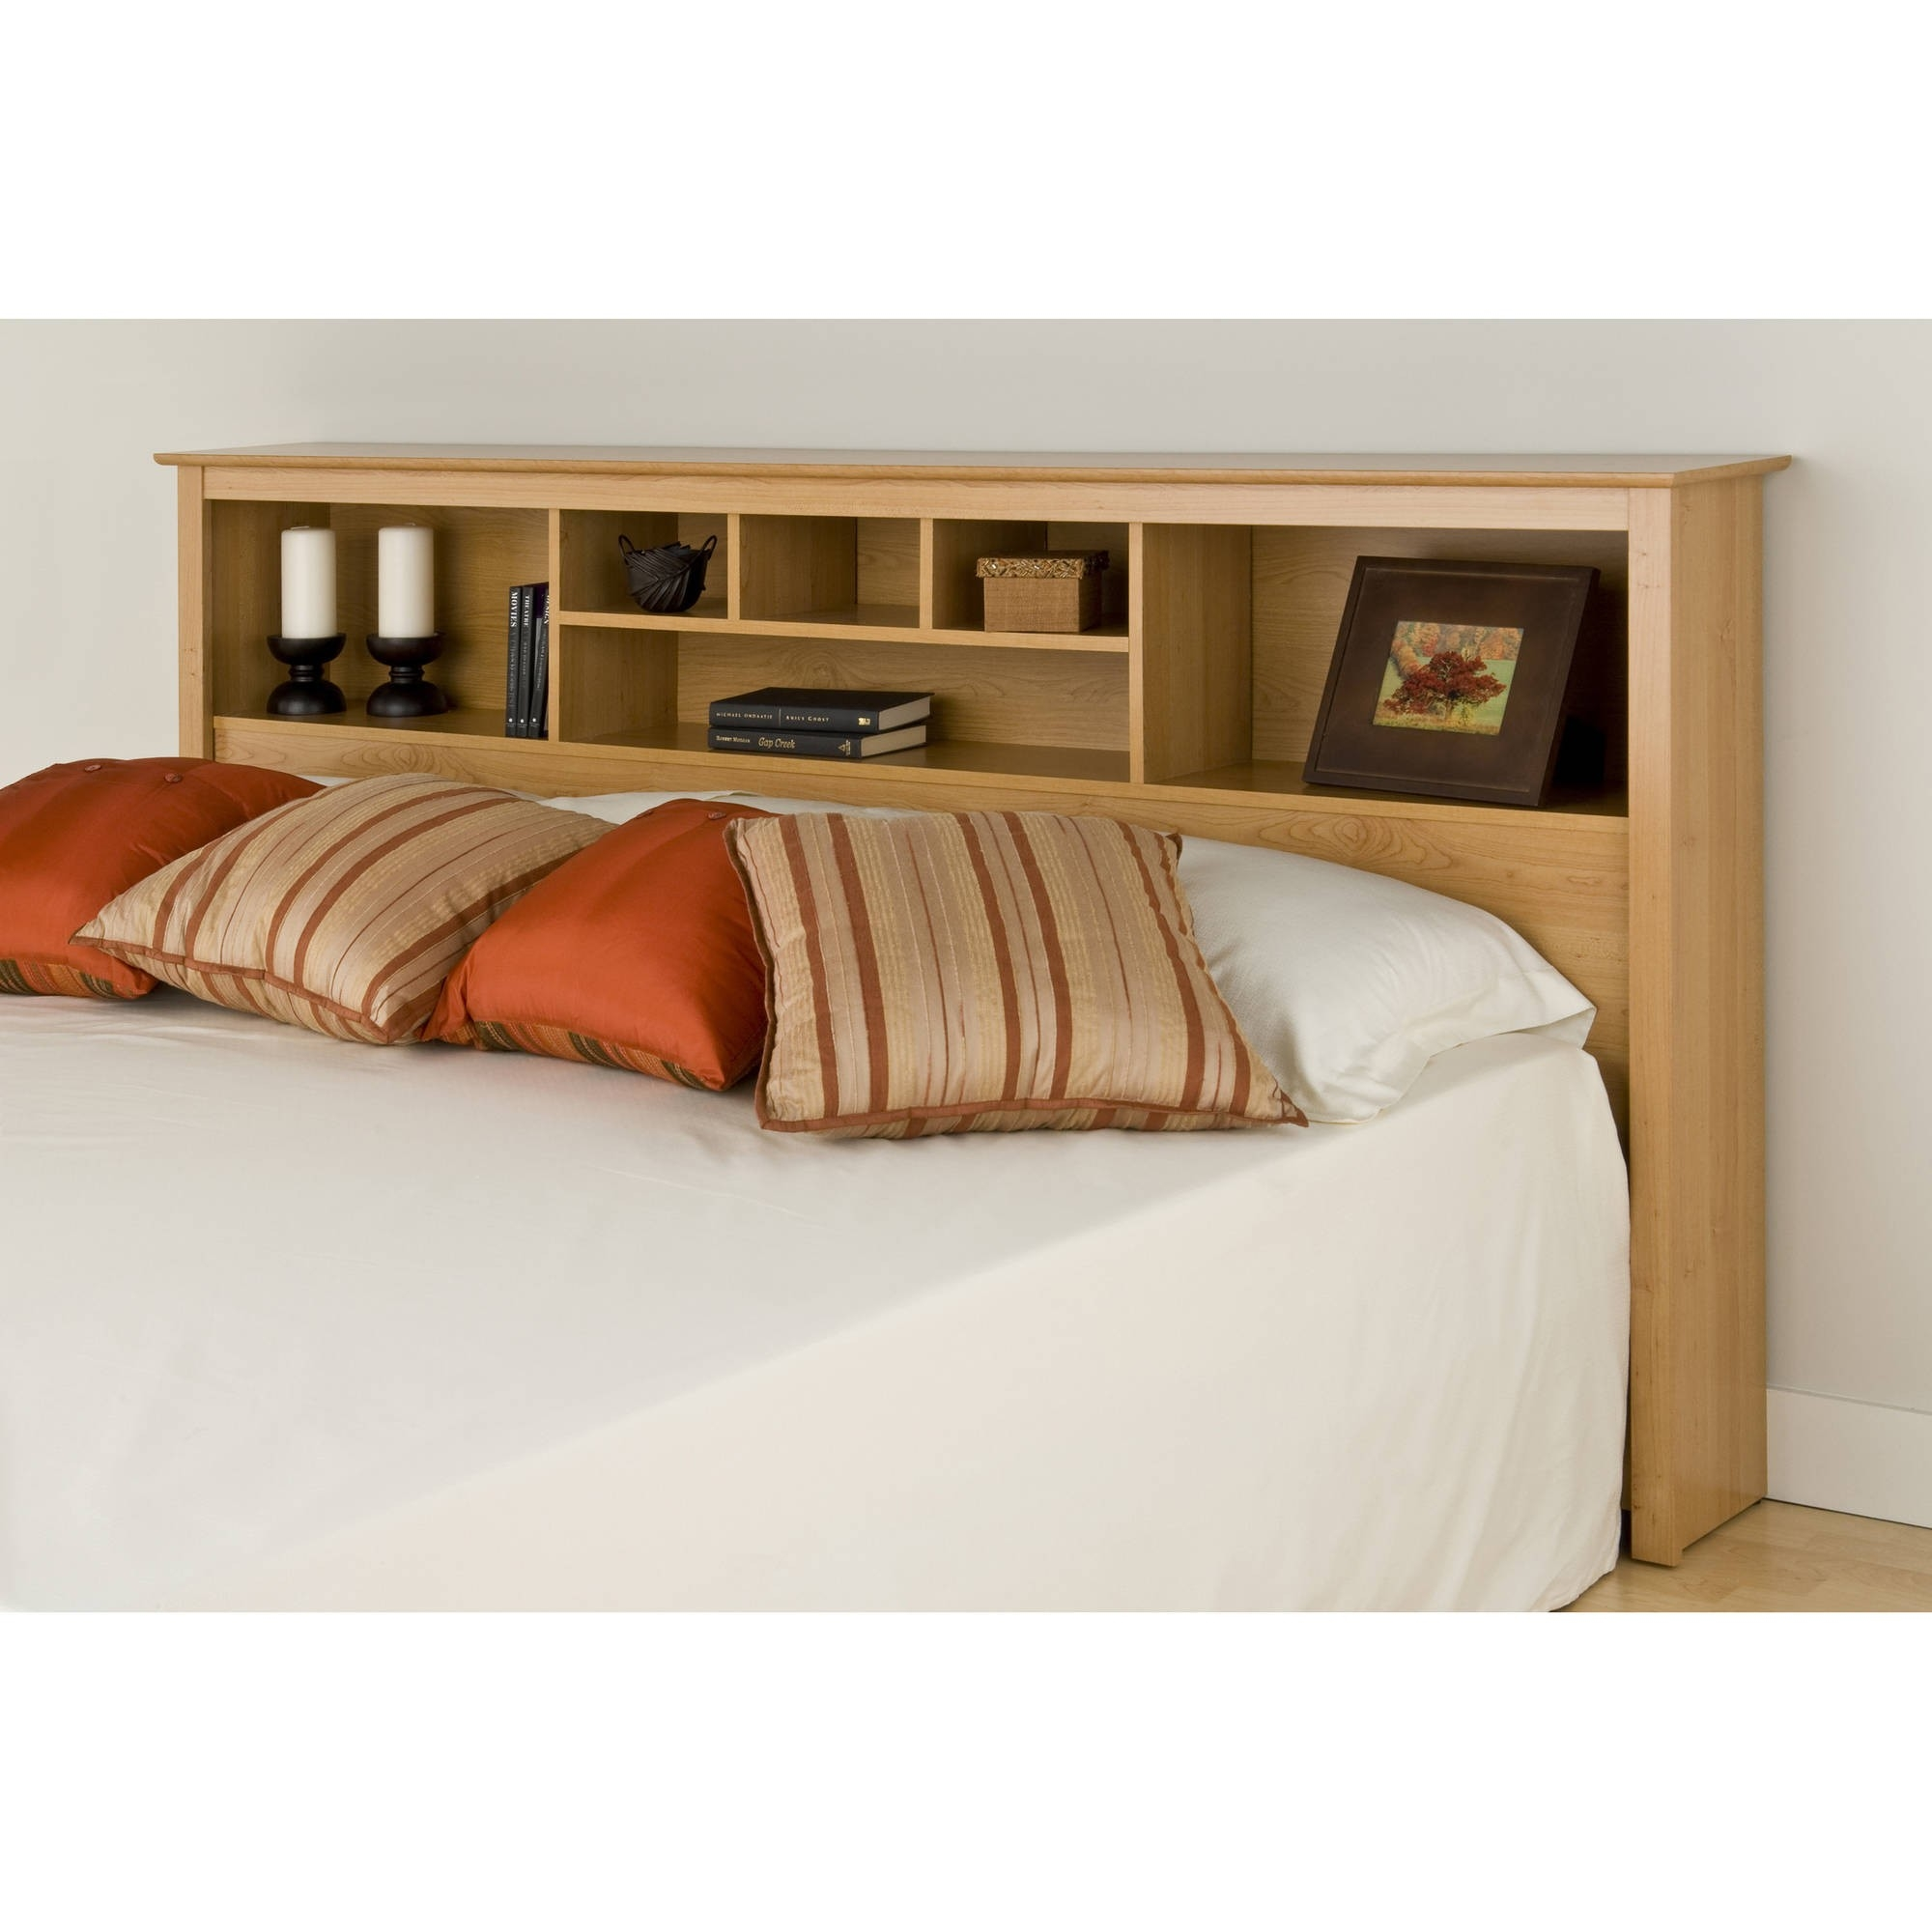 King Size Headboard With Shelves Ideas On Foter